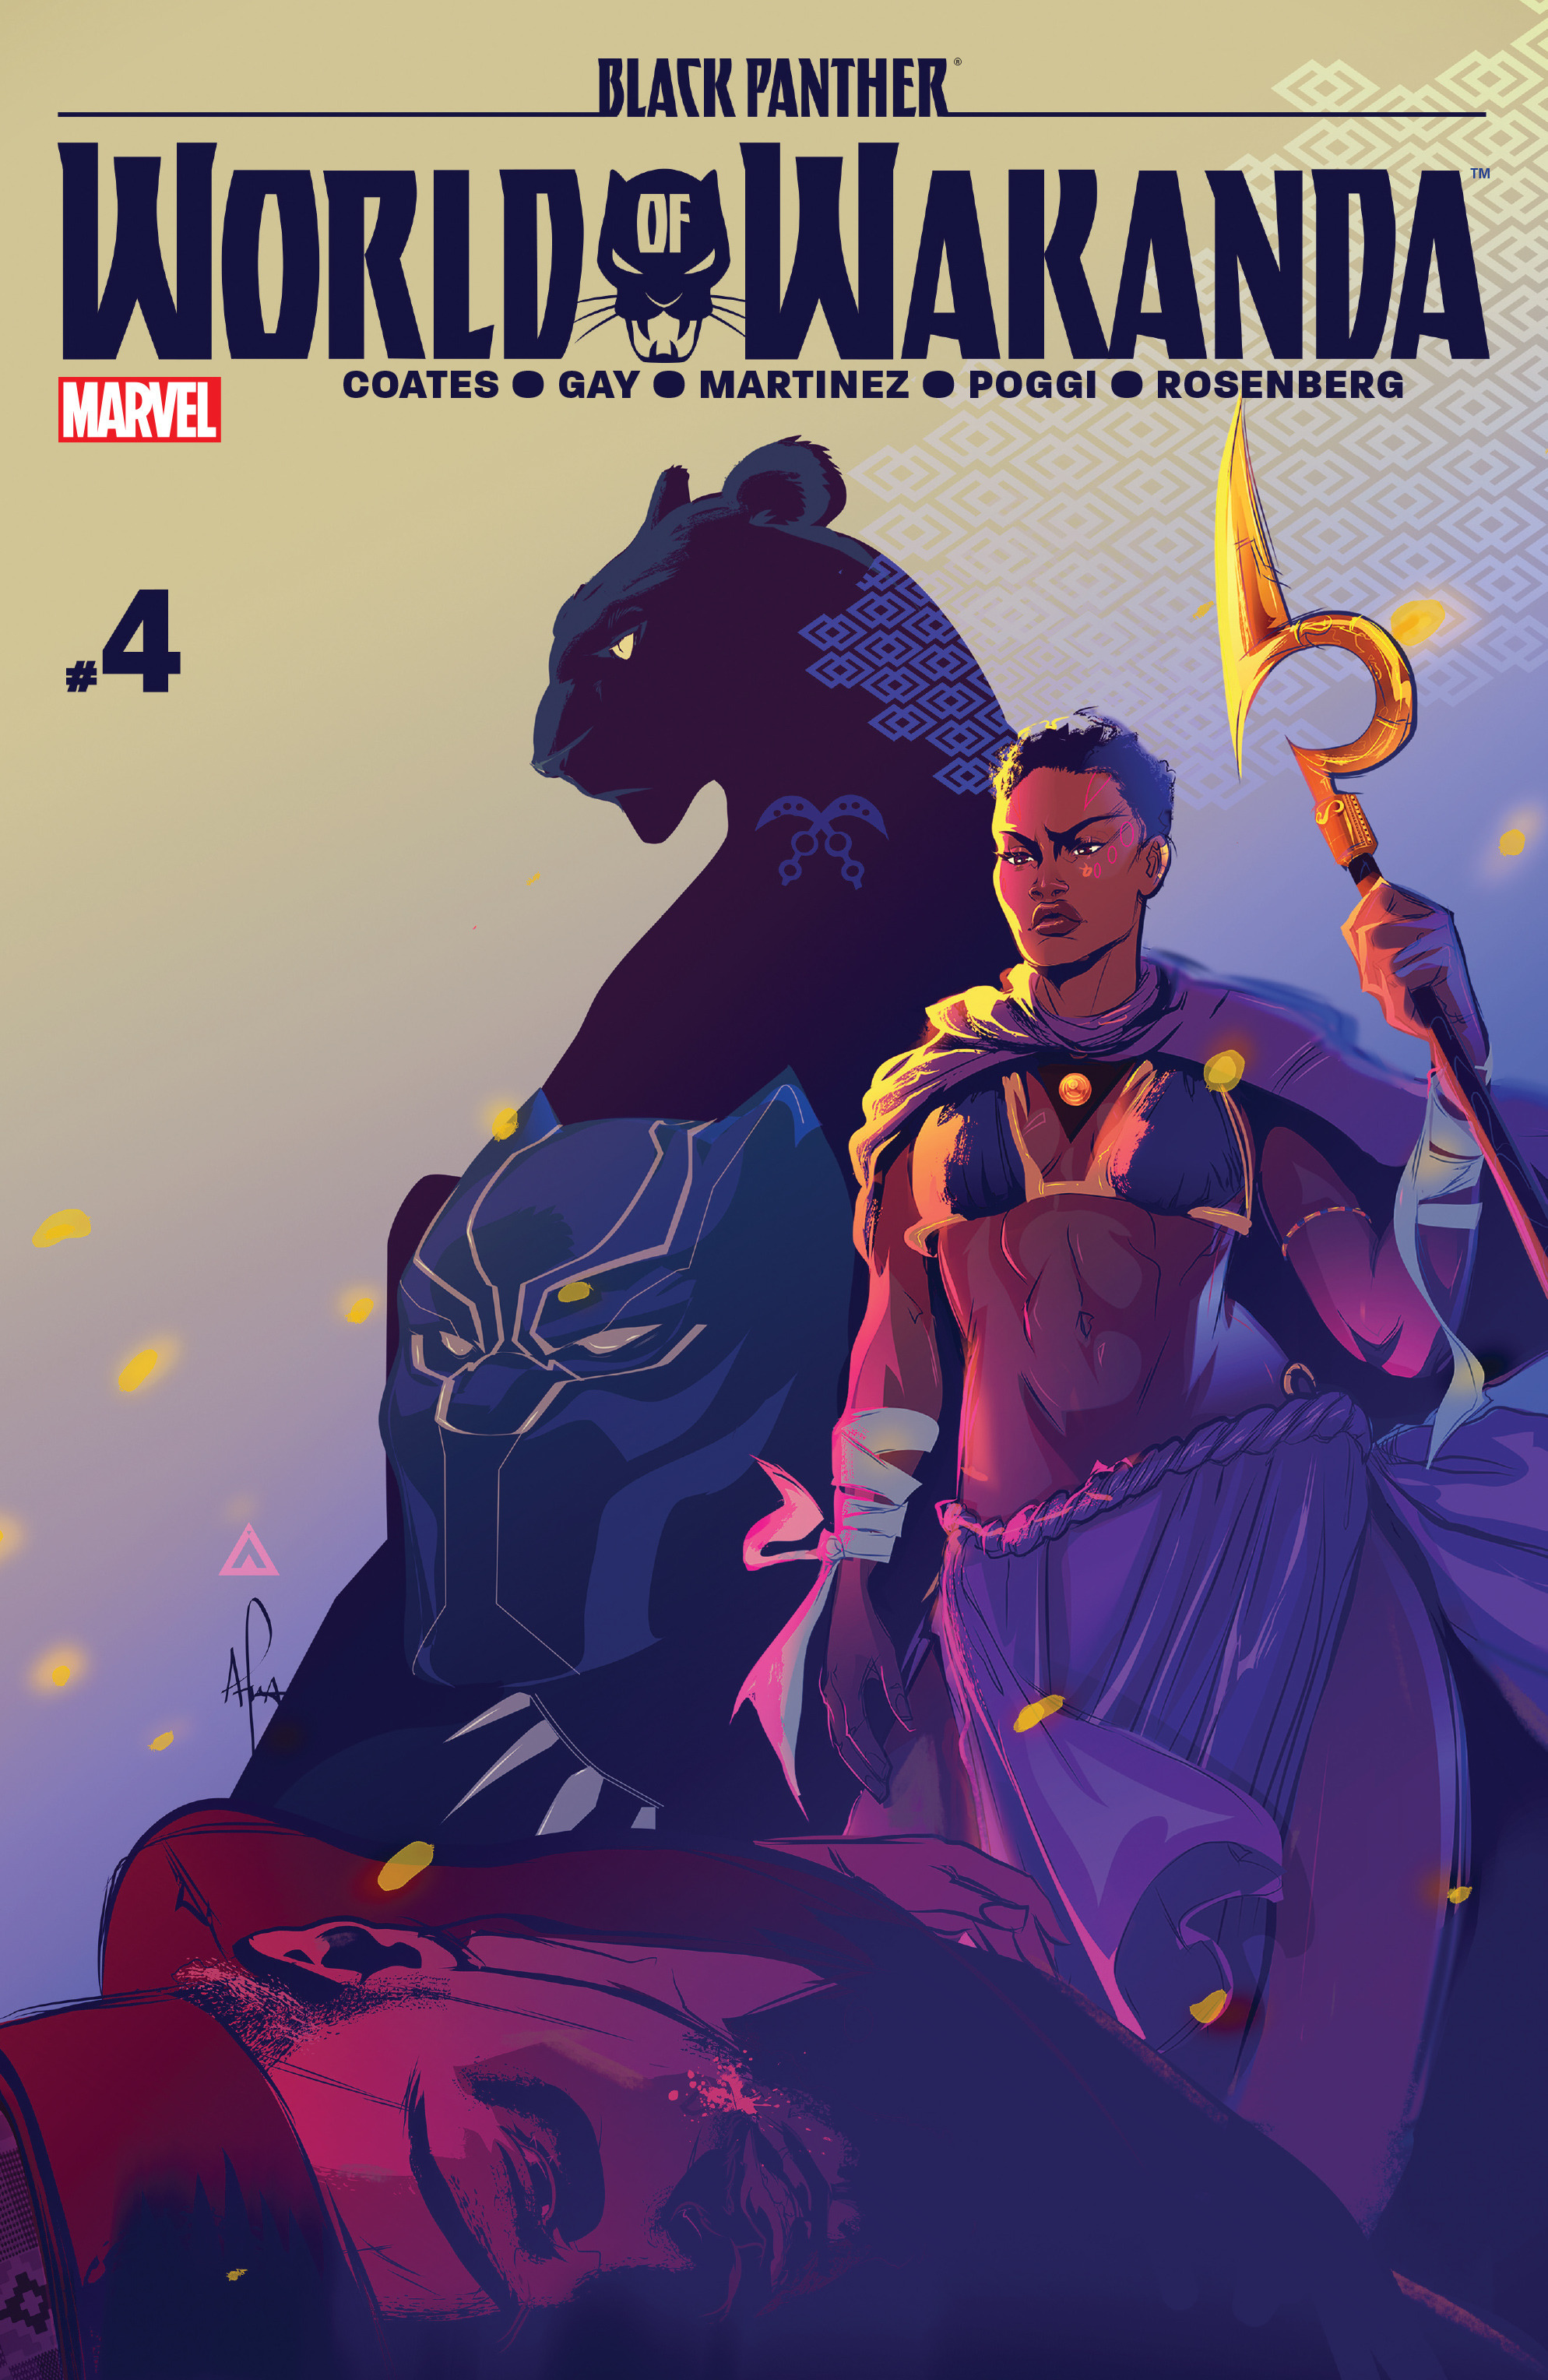 Read online Black Panther: World of Wakanda comic -  Issue #4 - 1